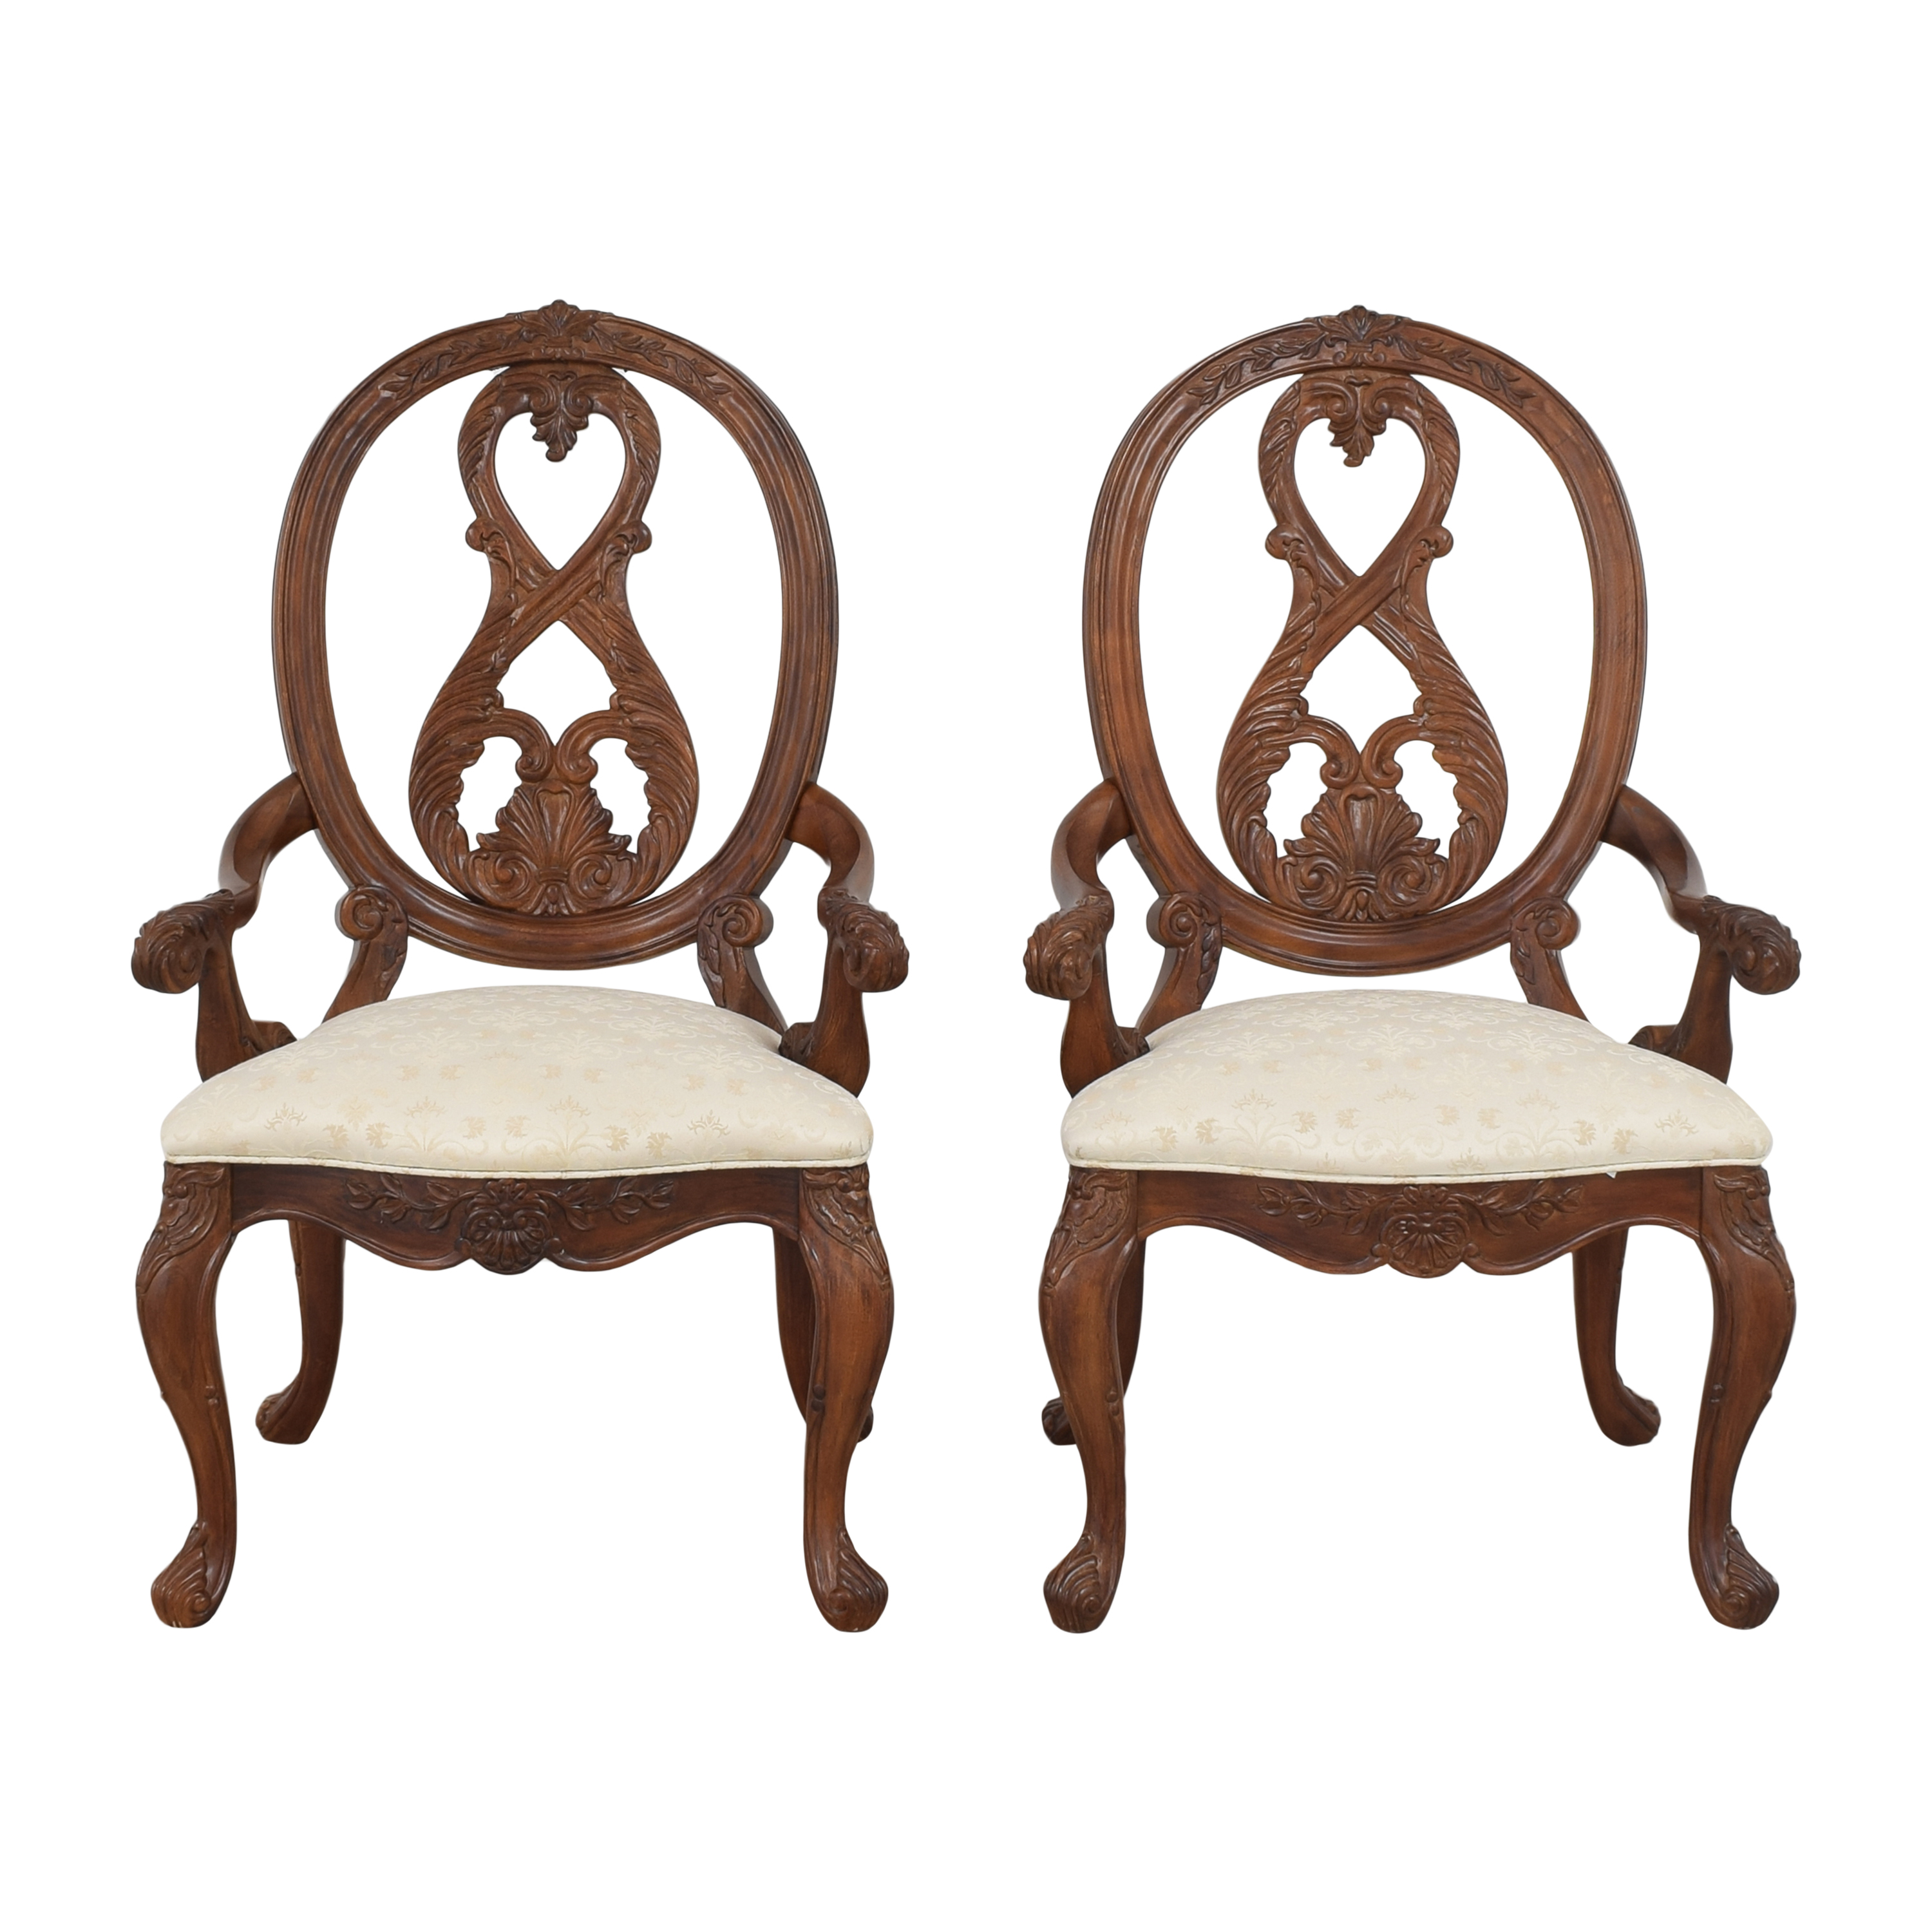 American Drew American Drew Jessica McClintock Home Oval Back Dining Arm Chairs on sale